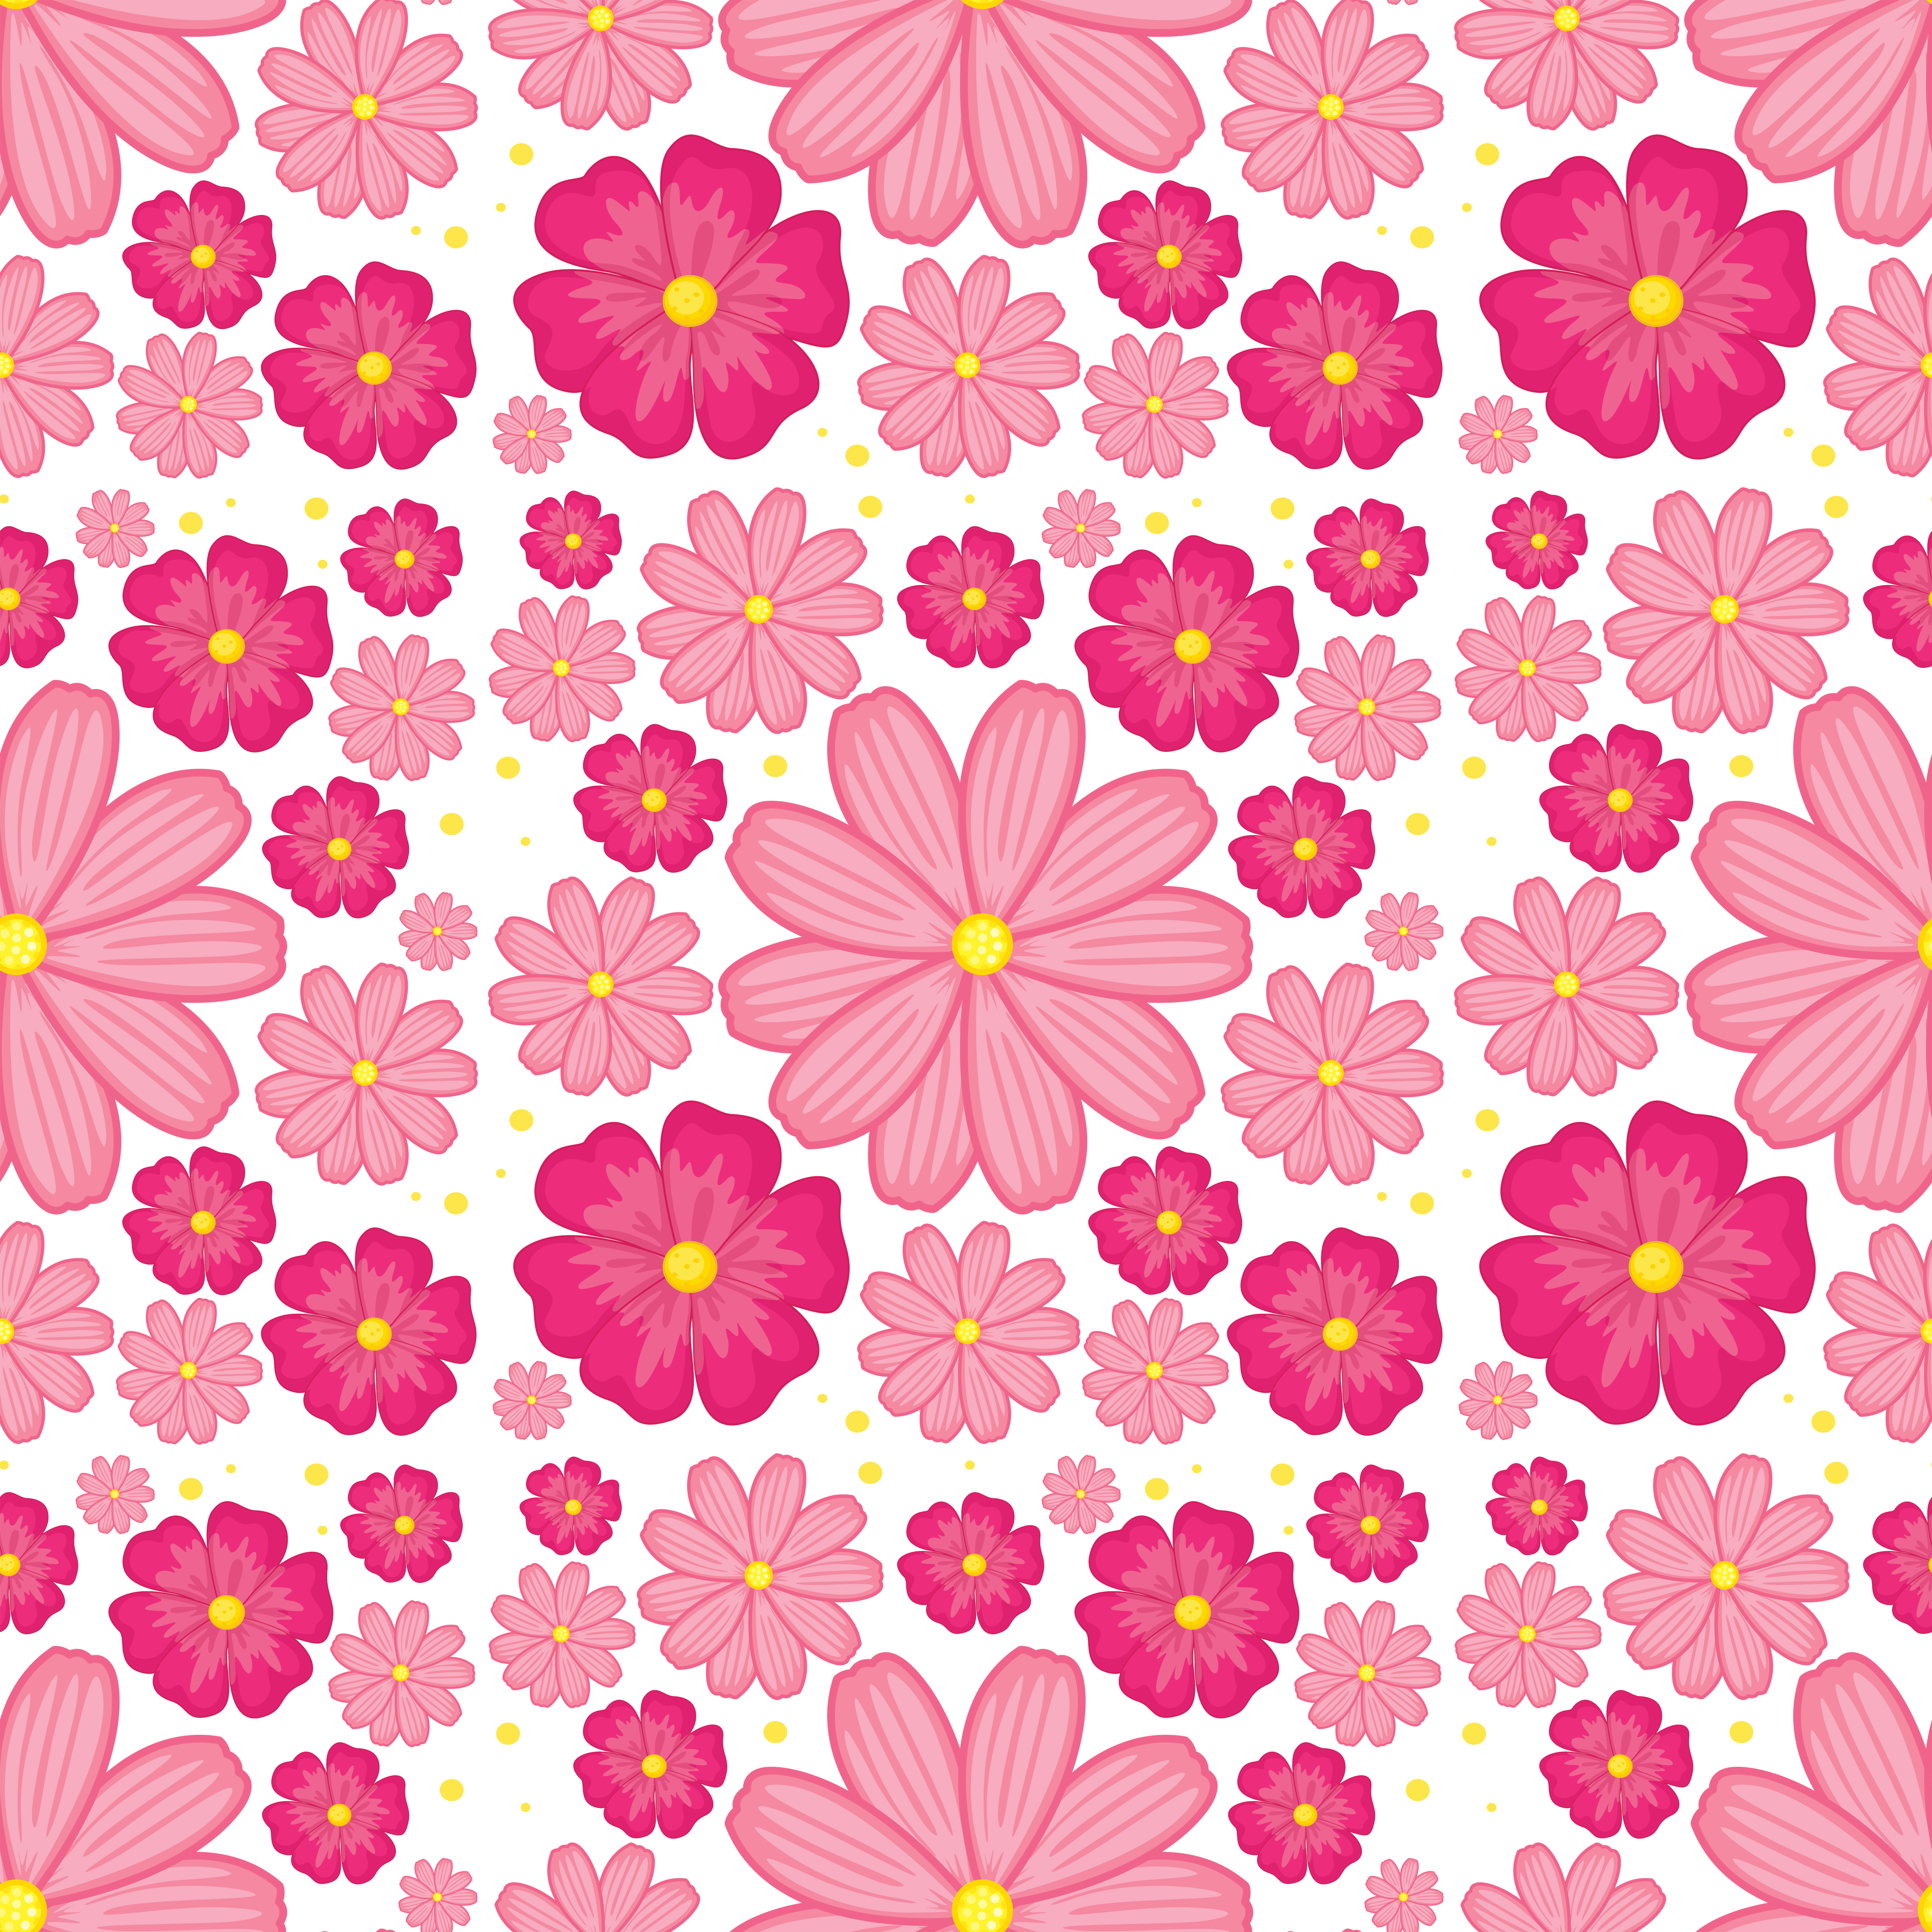 Pink Flower Seamless Background Download Free Vectors